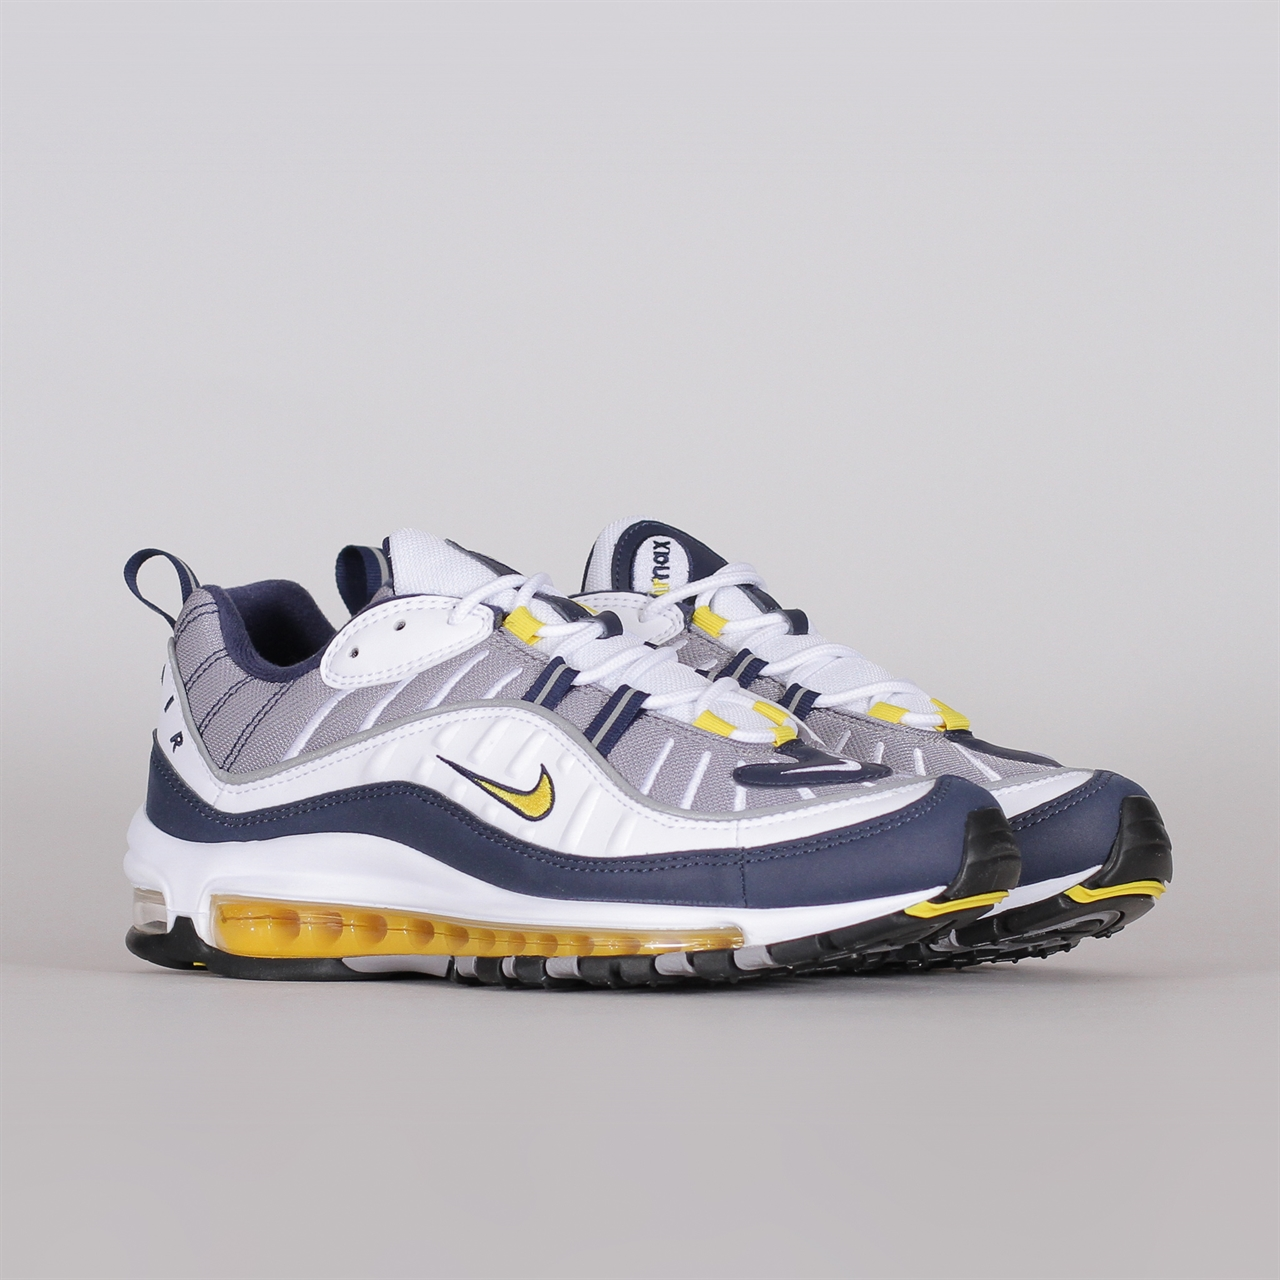 8e8860f28f Air Max 98 (640744-105). 179 179EUR / a pair. Colorway: White/Tour Yellow-Midnight  Navy